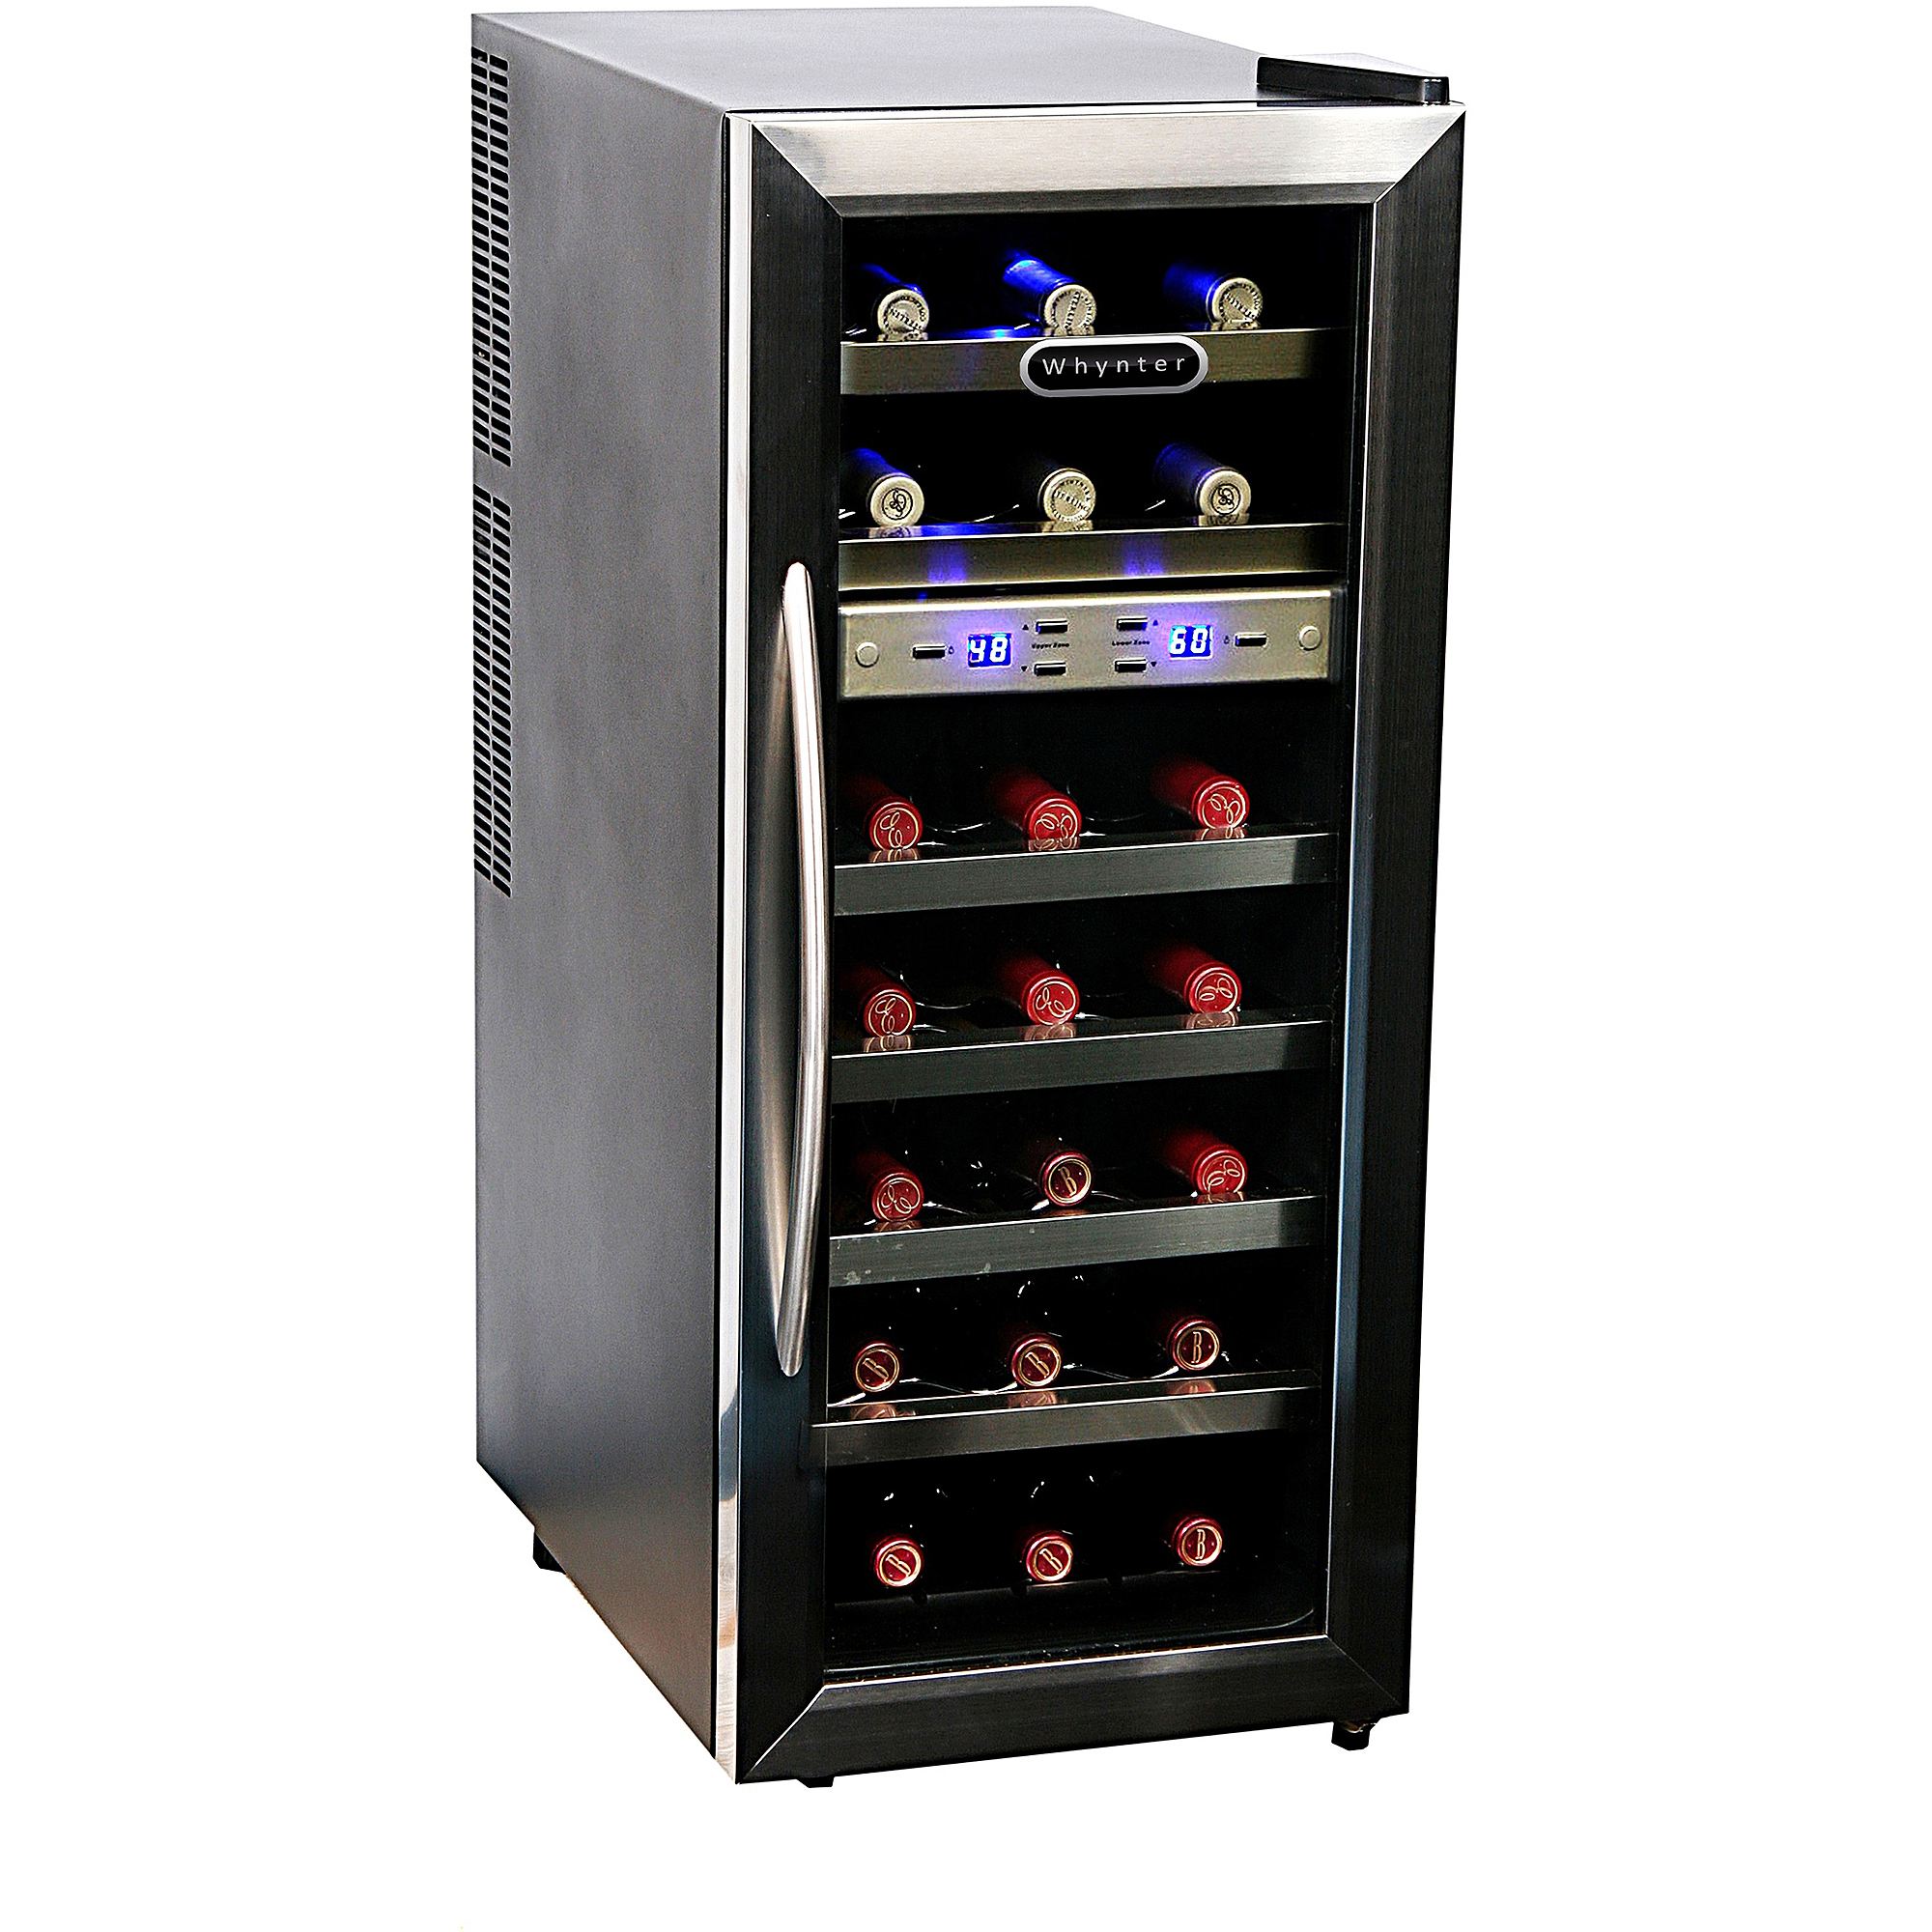 Whynter WC-211DZ 21-Bottle Dual Temperature Zone Wine Cooler